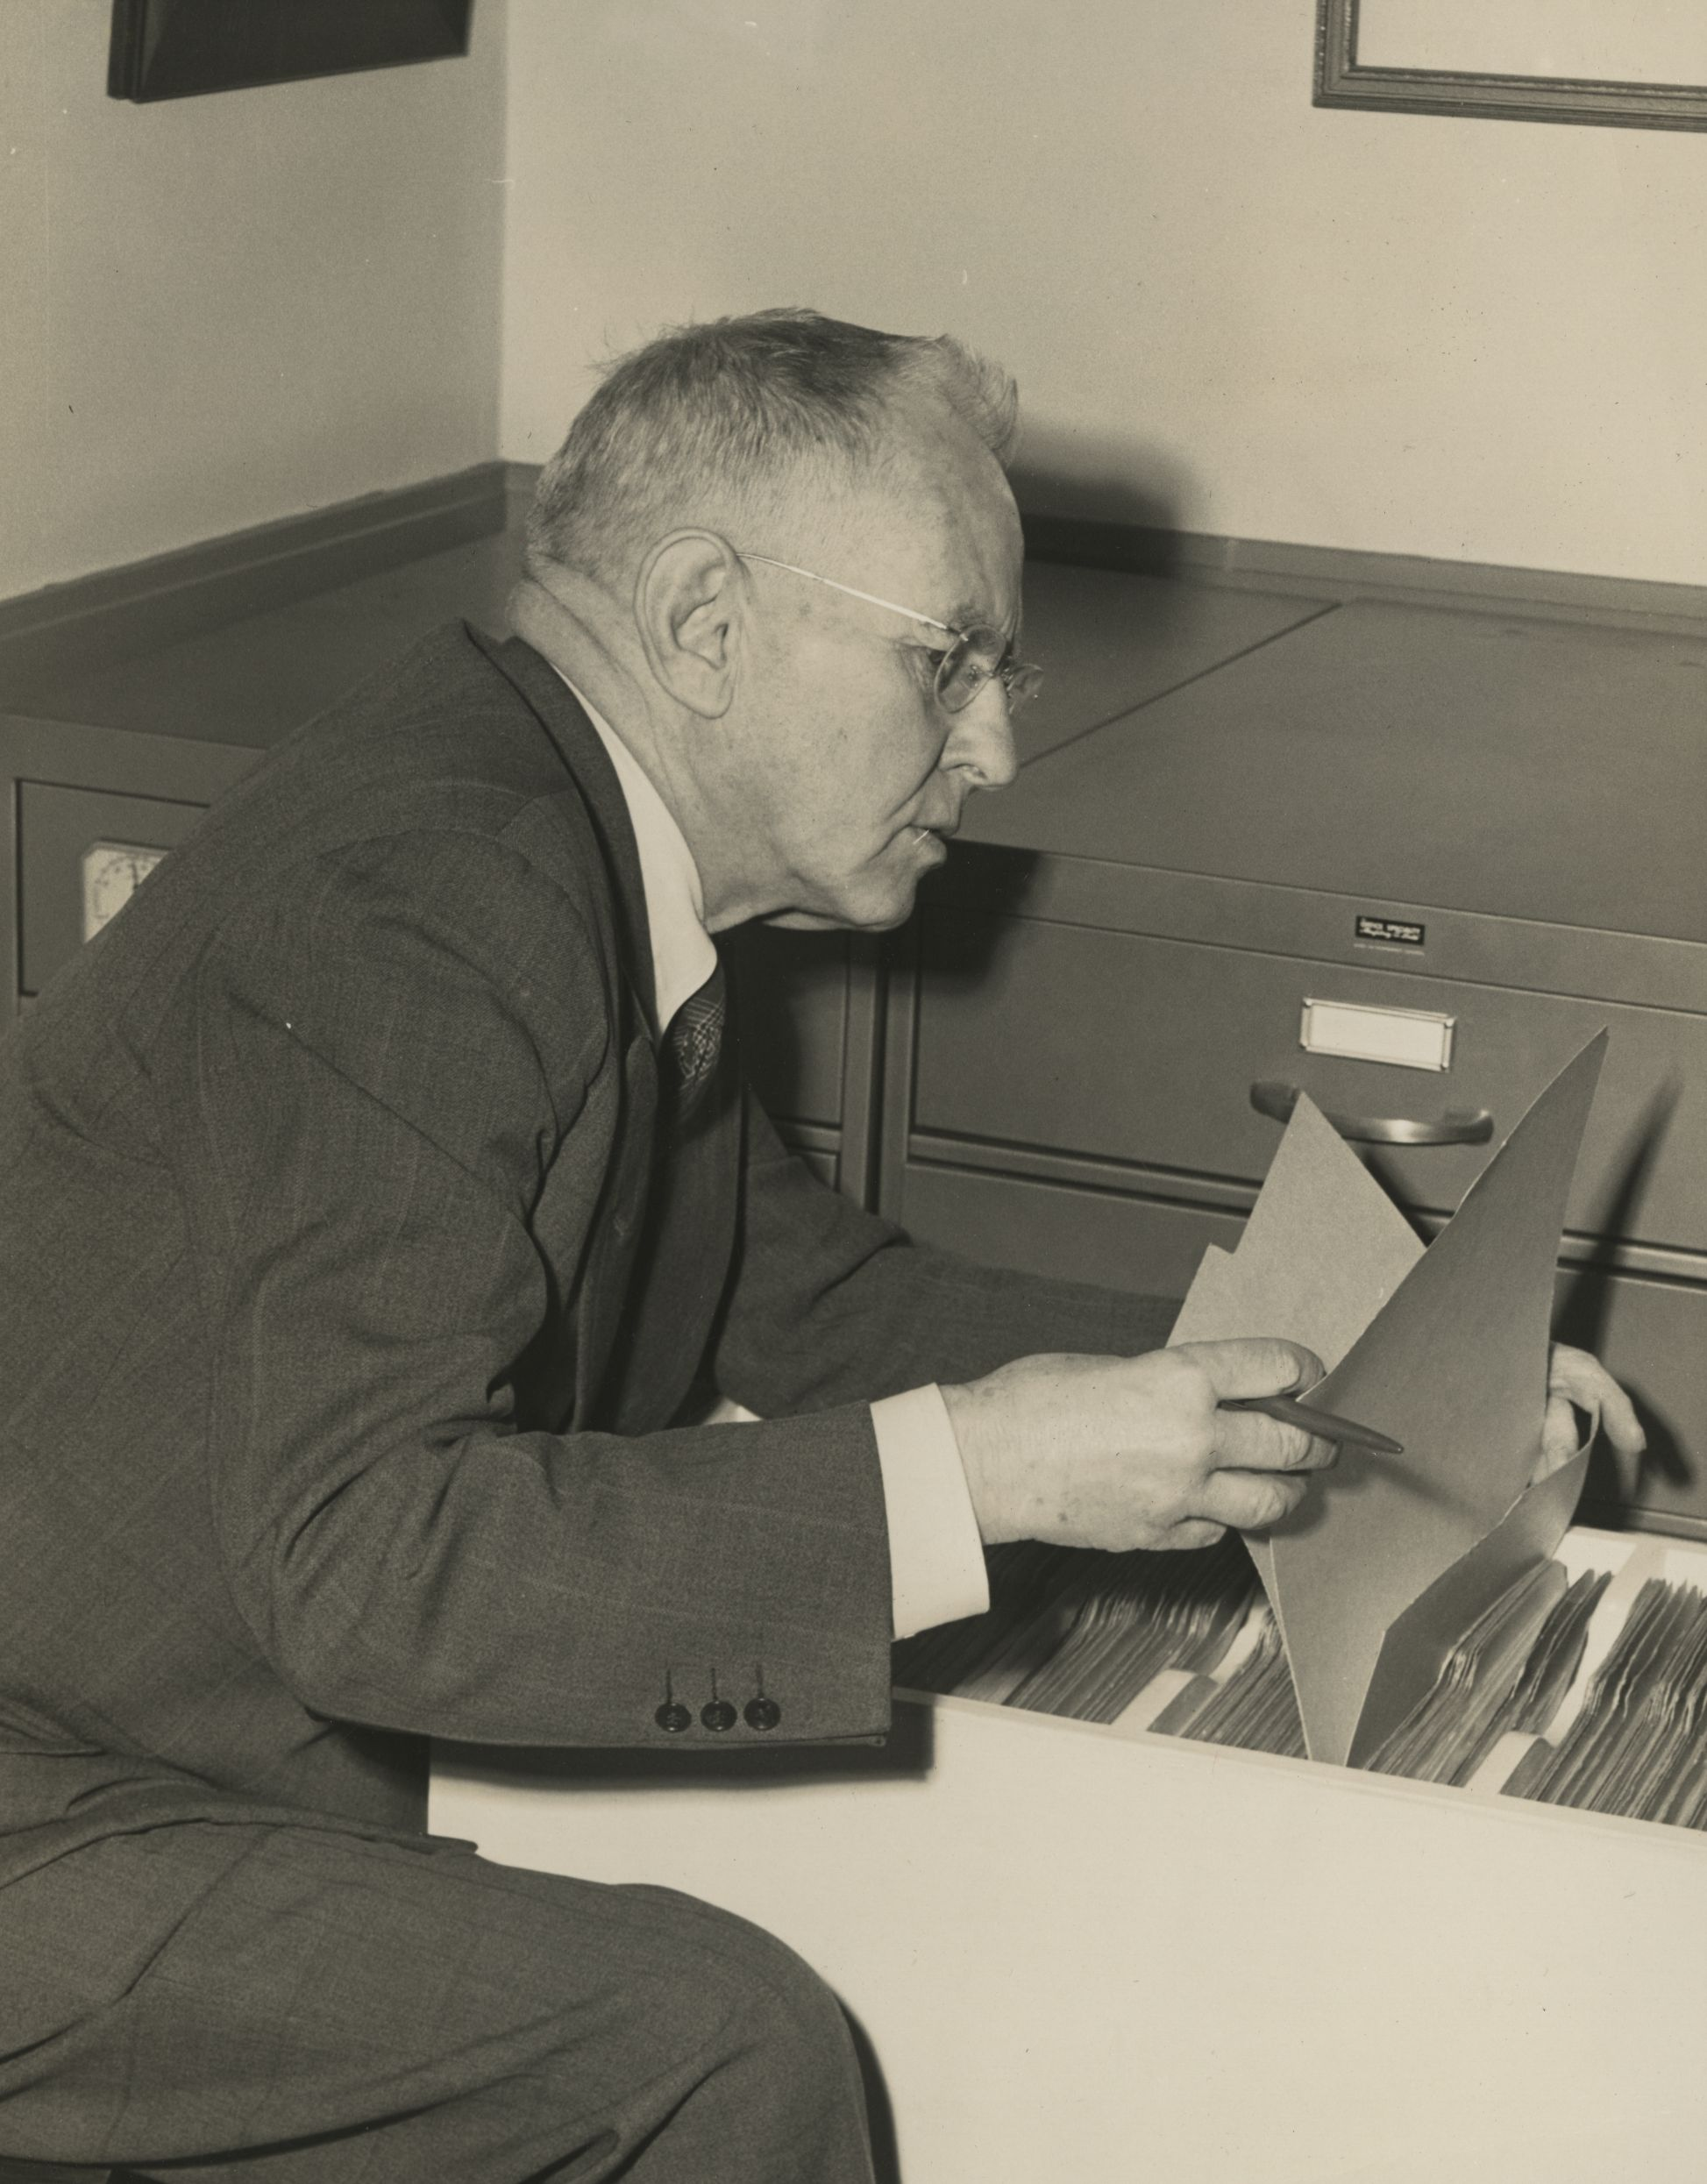 Winthrop Pickard Bell leaning in front of a filing cabinet looking through files.